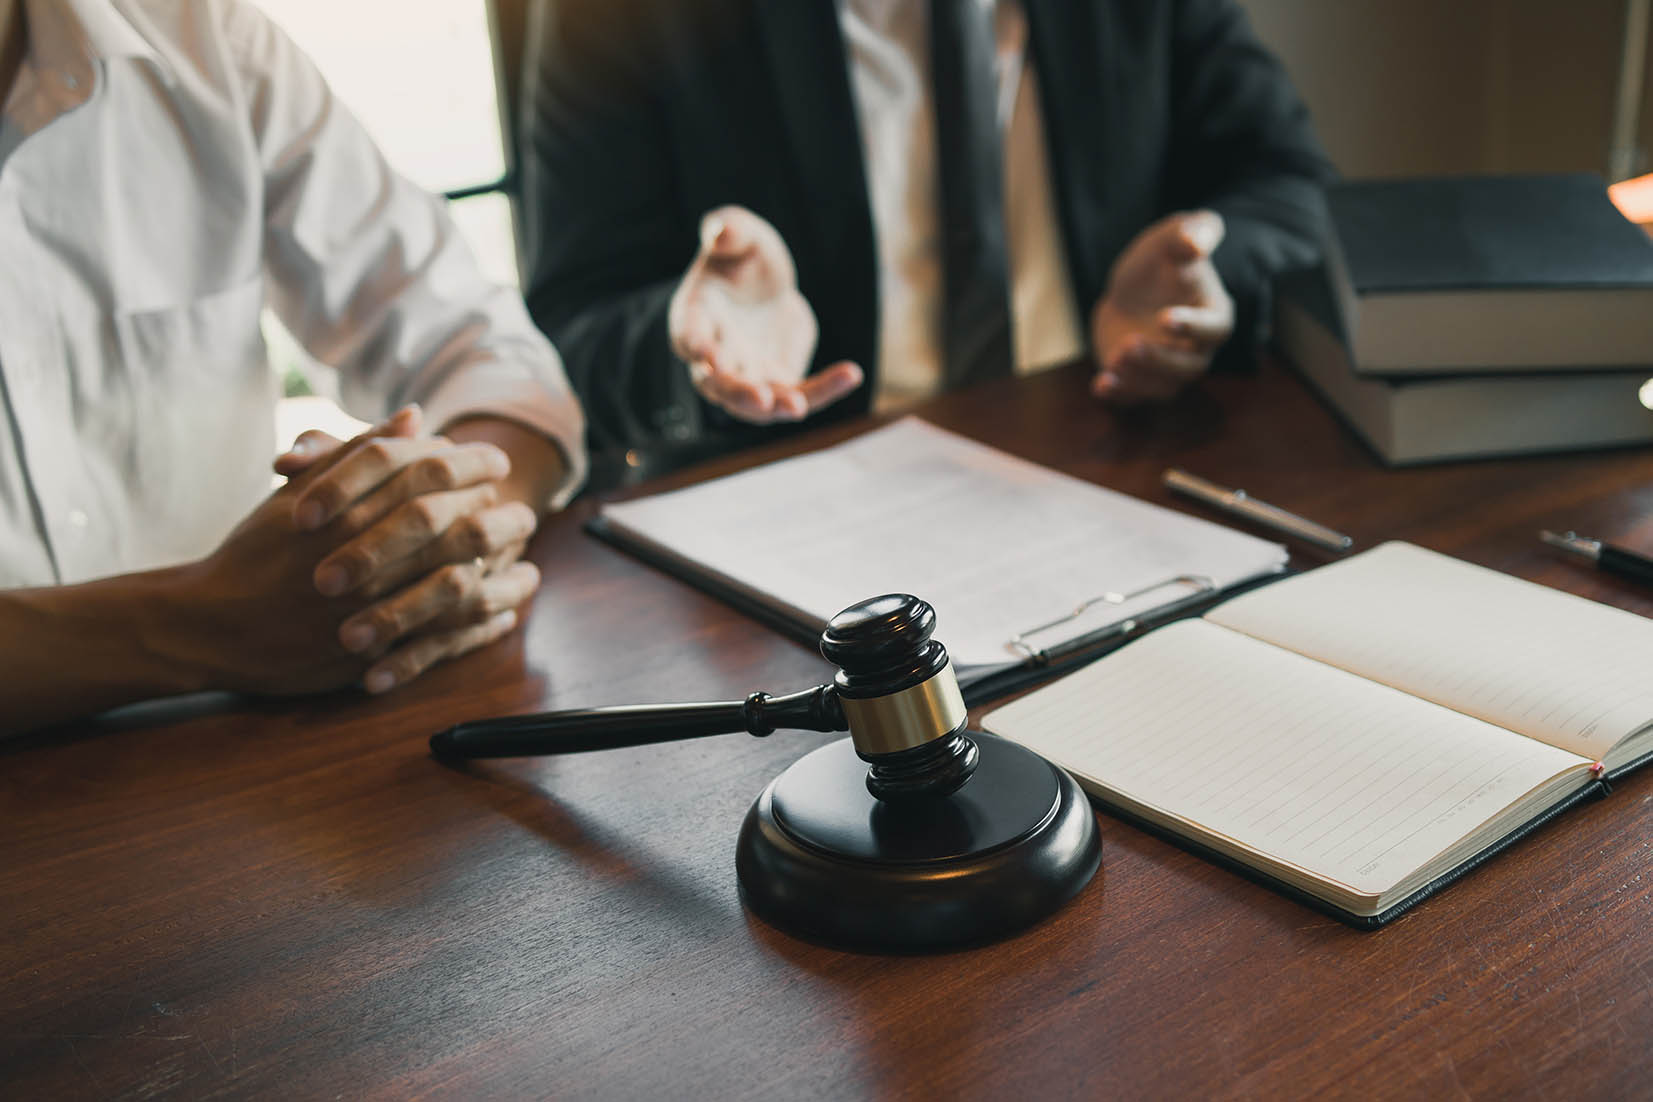 Workplace Violence_Lawyer pleading case for business client